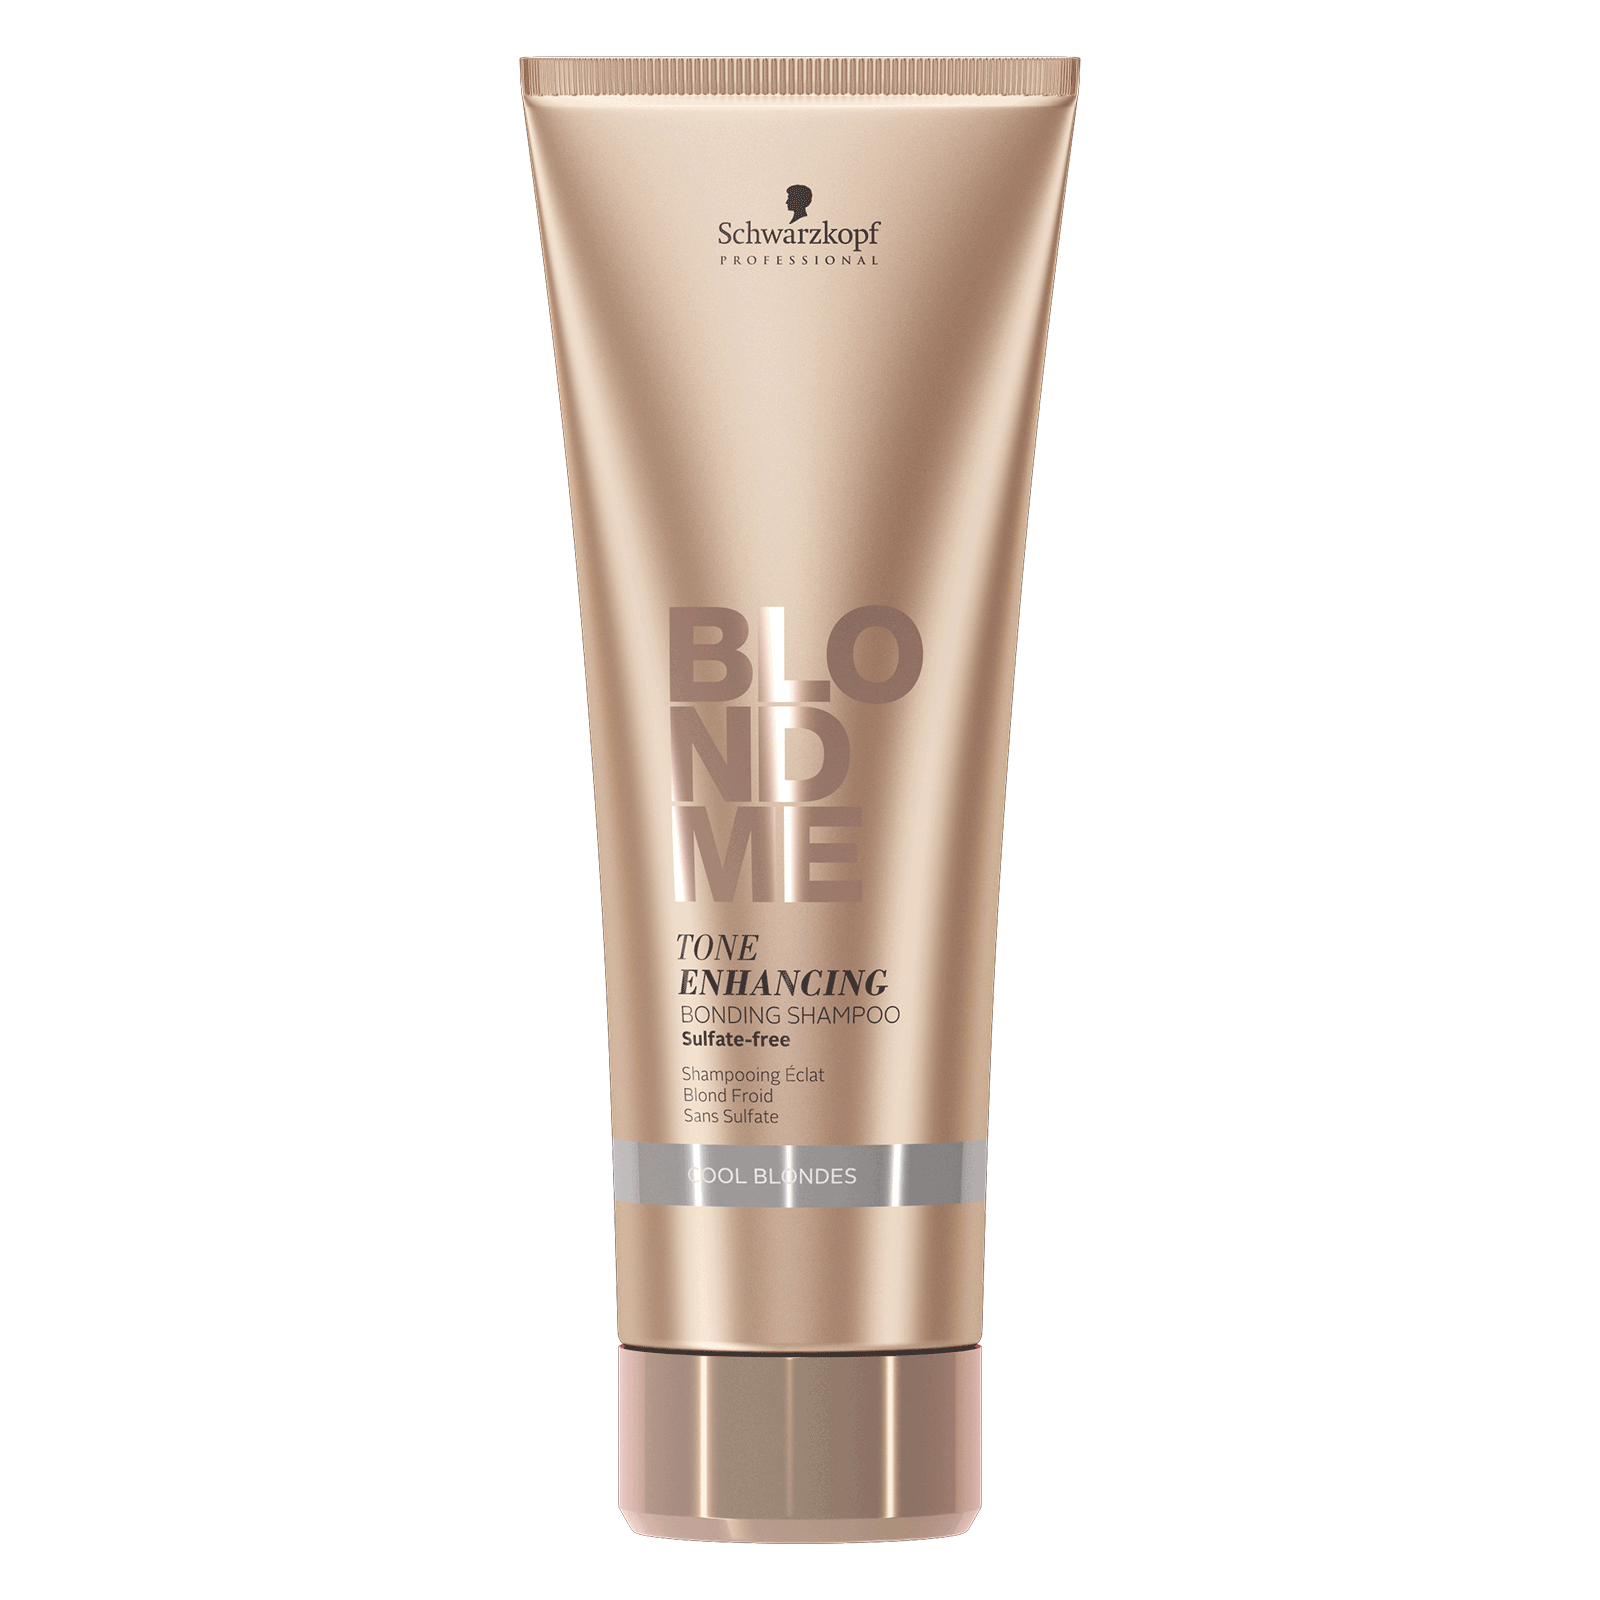 BlondMe - Tone Enhancing Bonding Shampoo - Cool Blonde